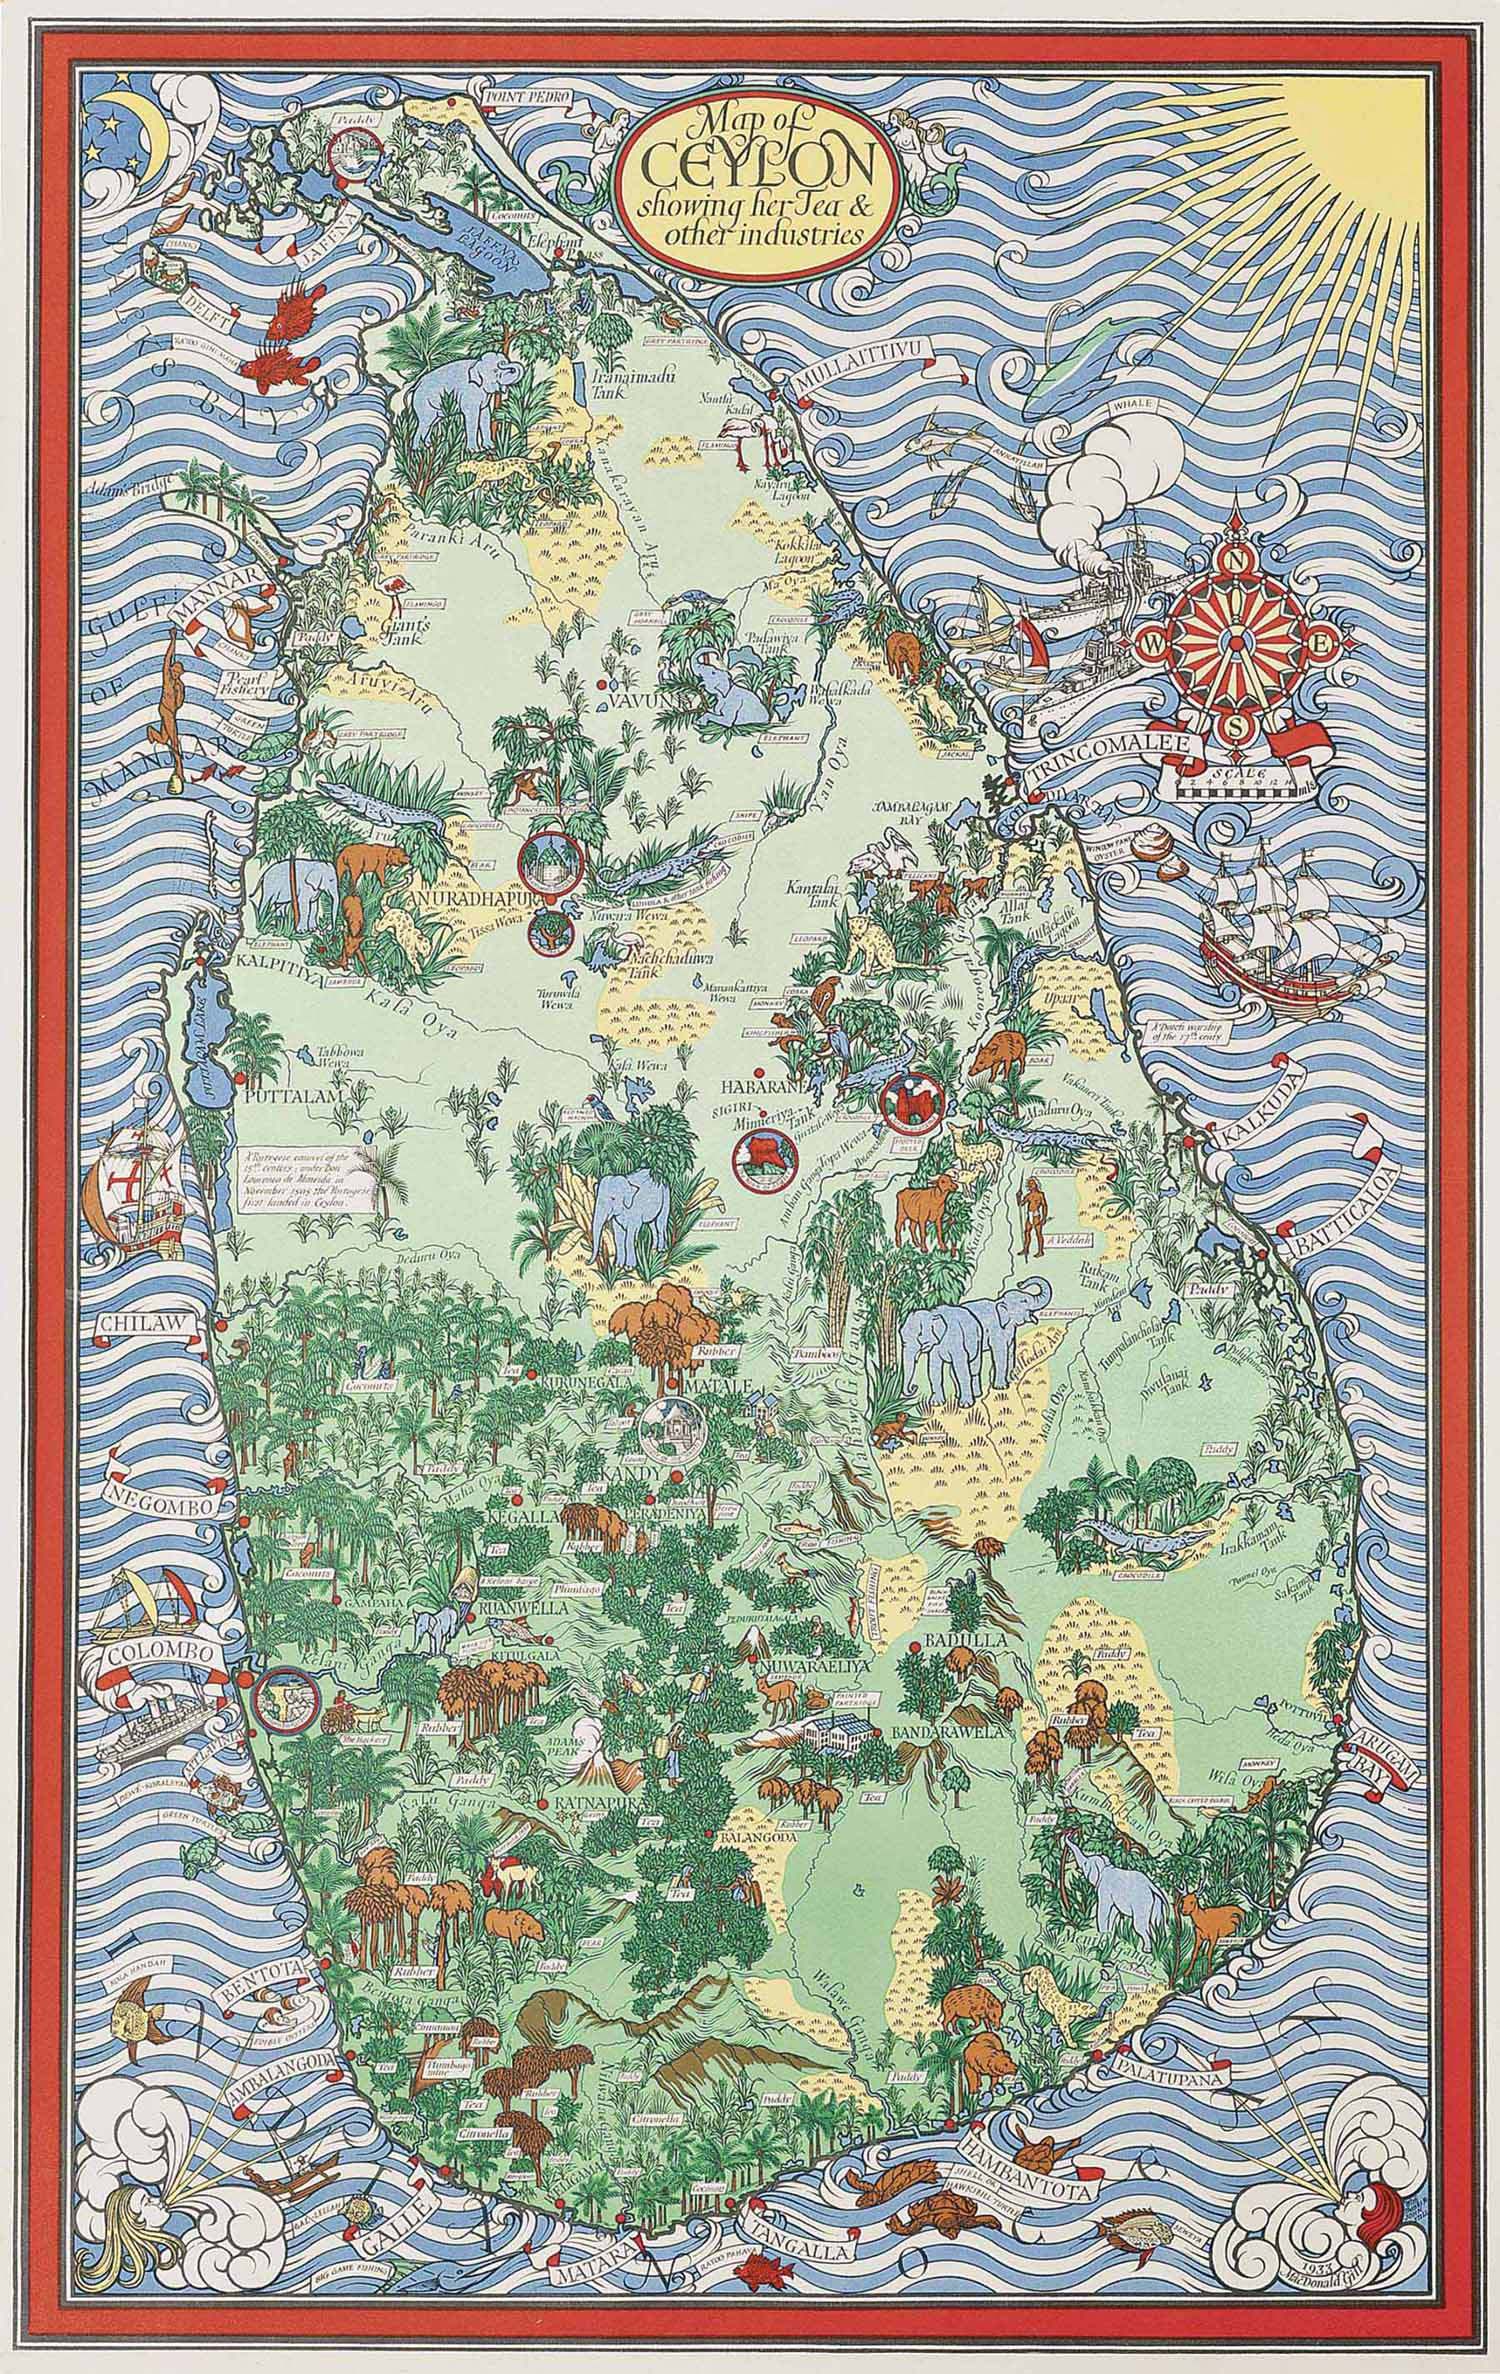 MAP OF CEYLON SHOWING HER TEA AND OTHER INDUSTRIES